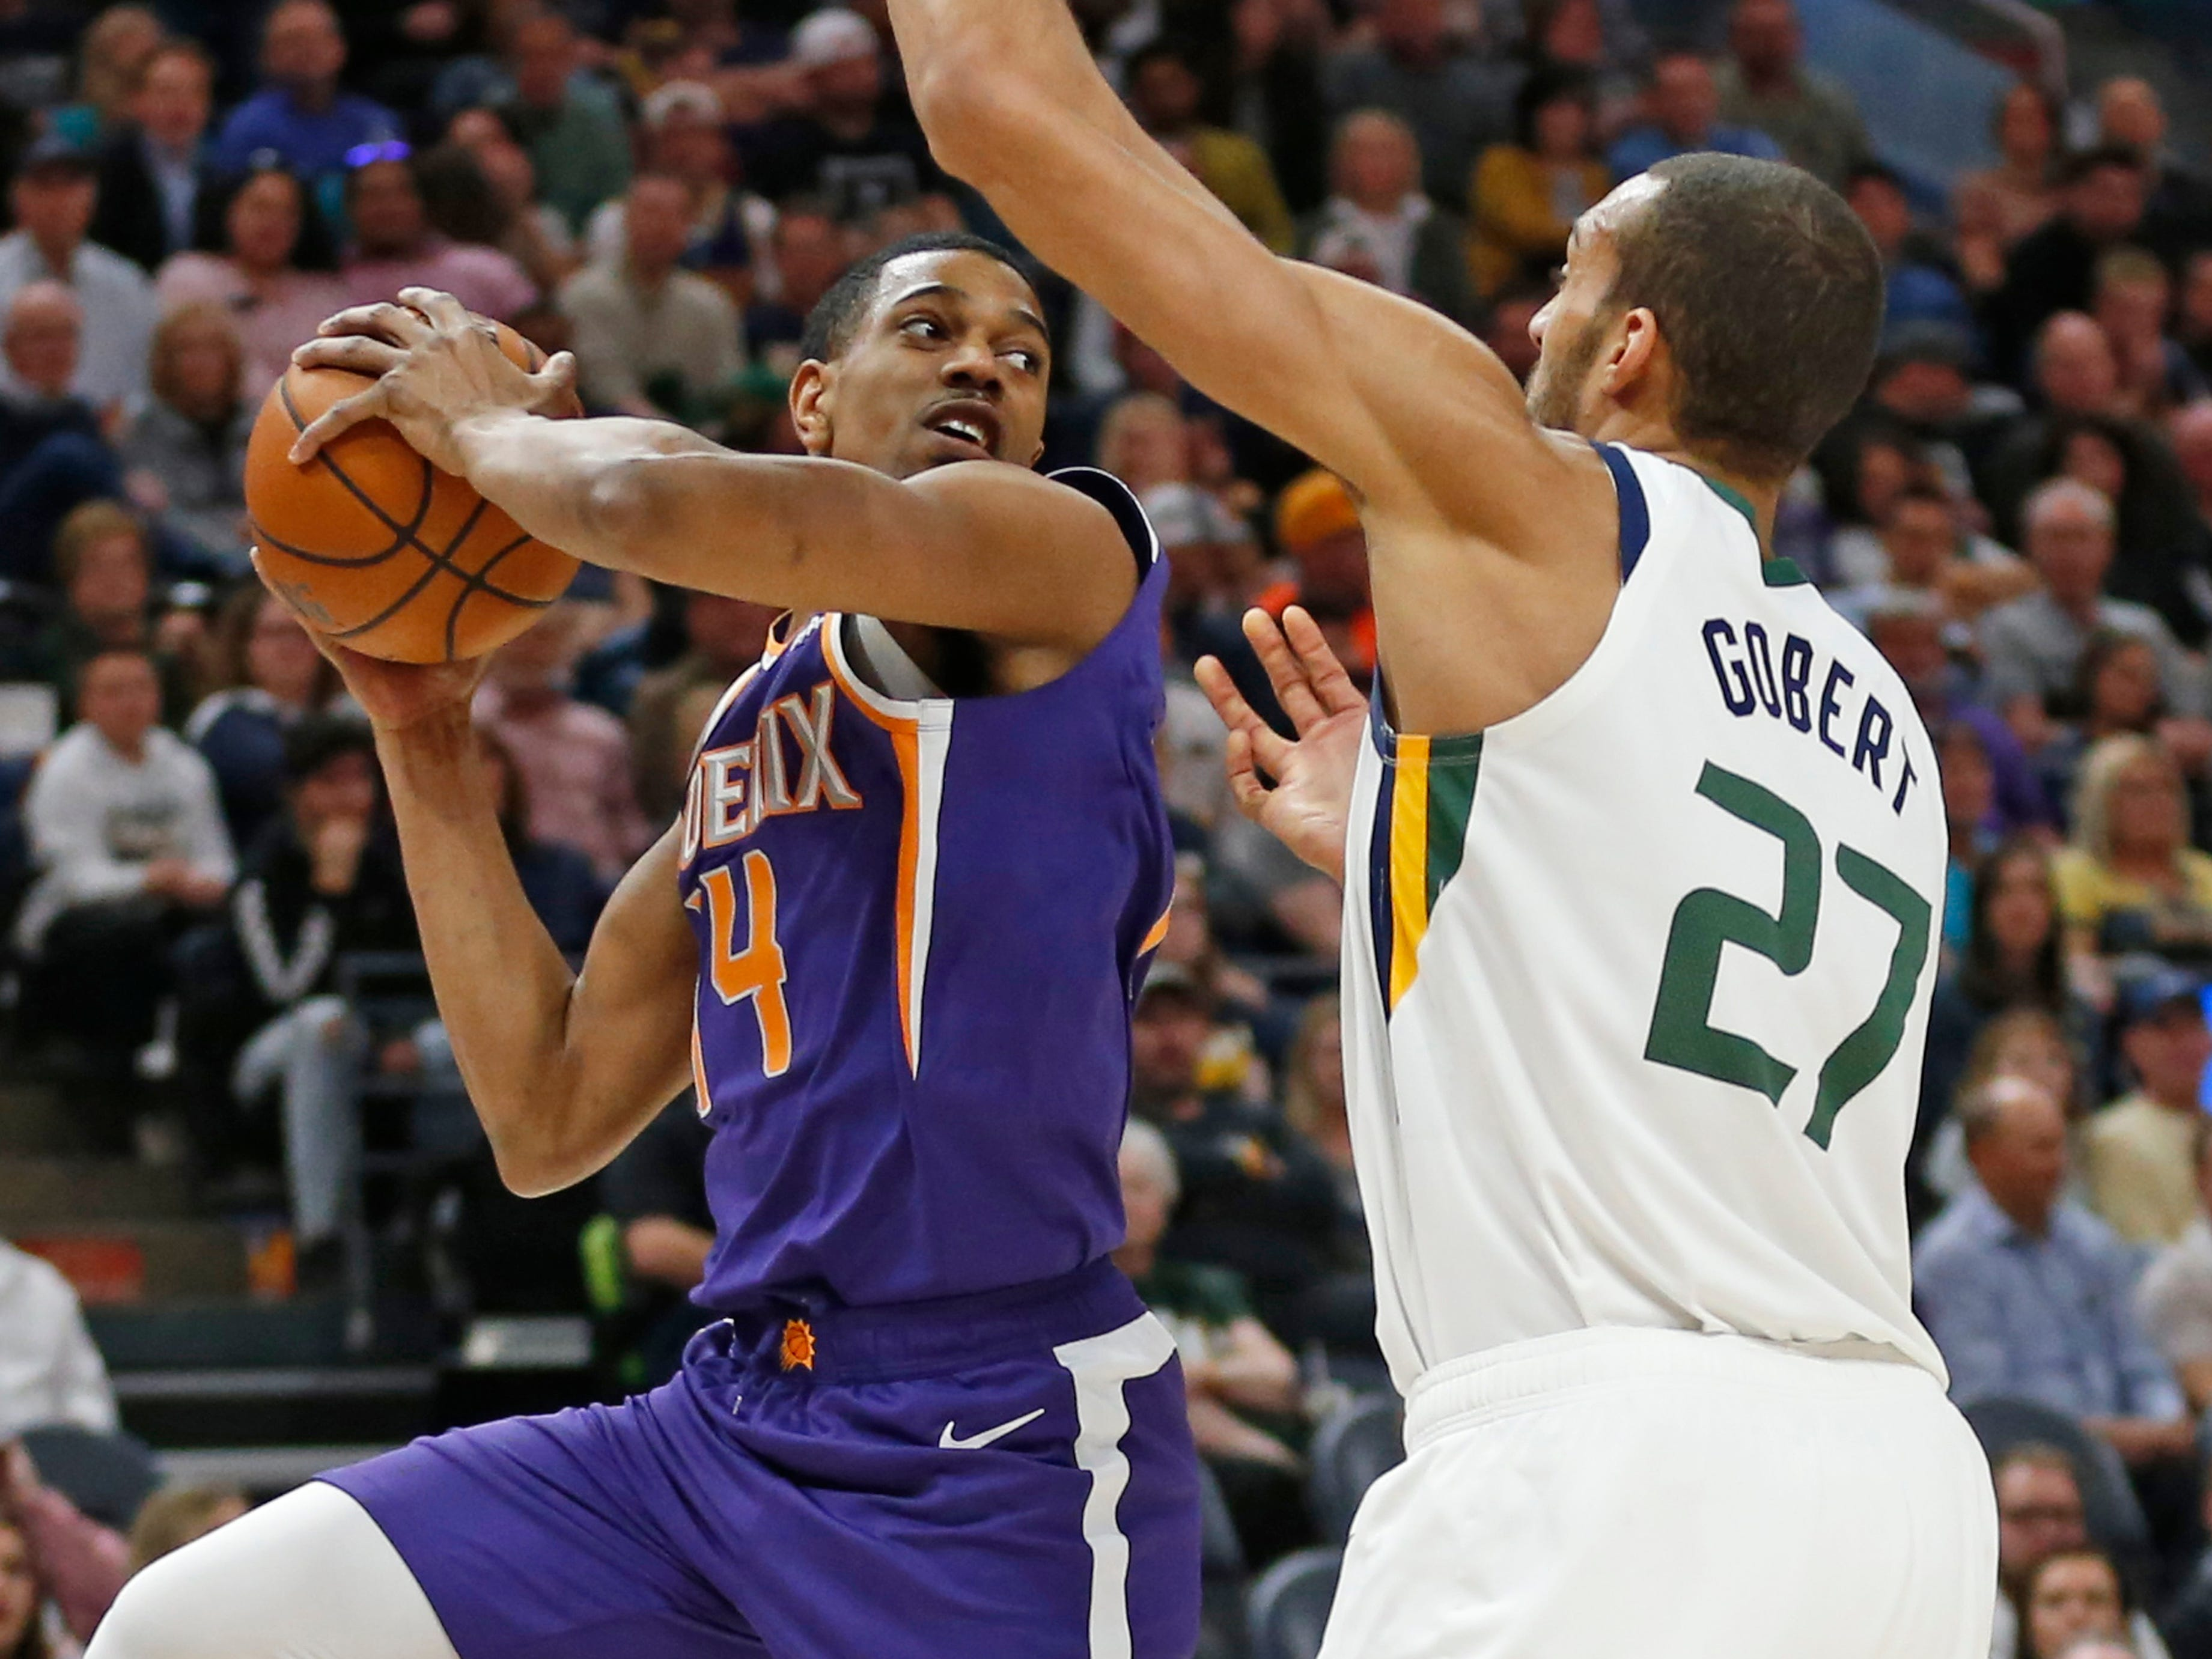 Phoenix Suns guard De'Anthony Melton, left, passes the ball as Utah Jazz center Rudy Gobert (27) defends during the first half of an NBA basketball game Monday, March 25, 2019, in Salt Lake City.